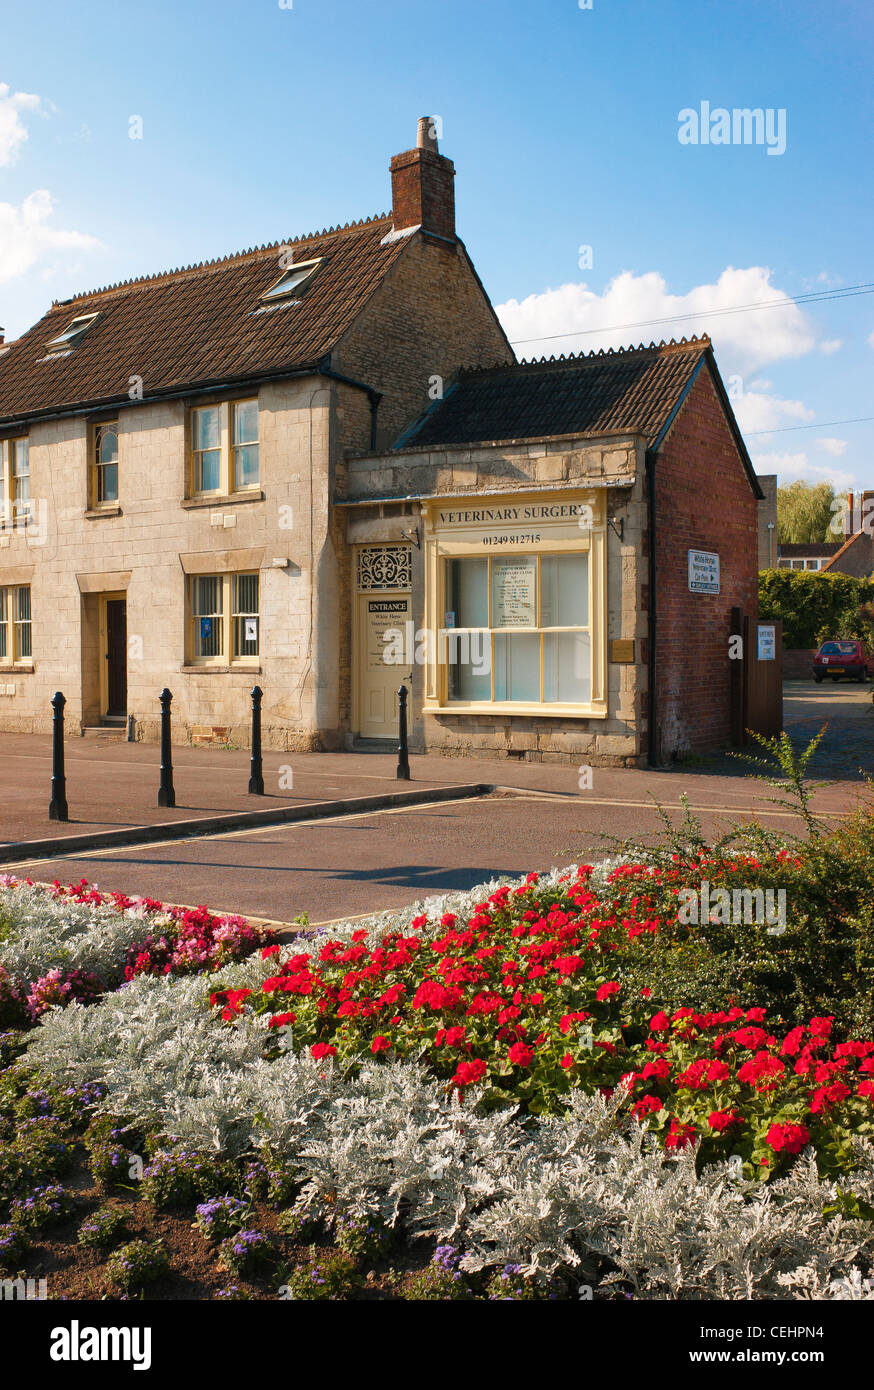 Exterior of veterinary surgery in Calne UK - Stock Image